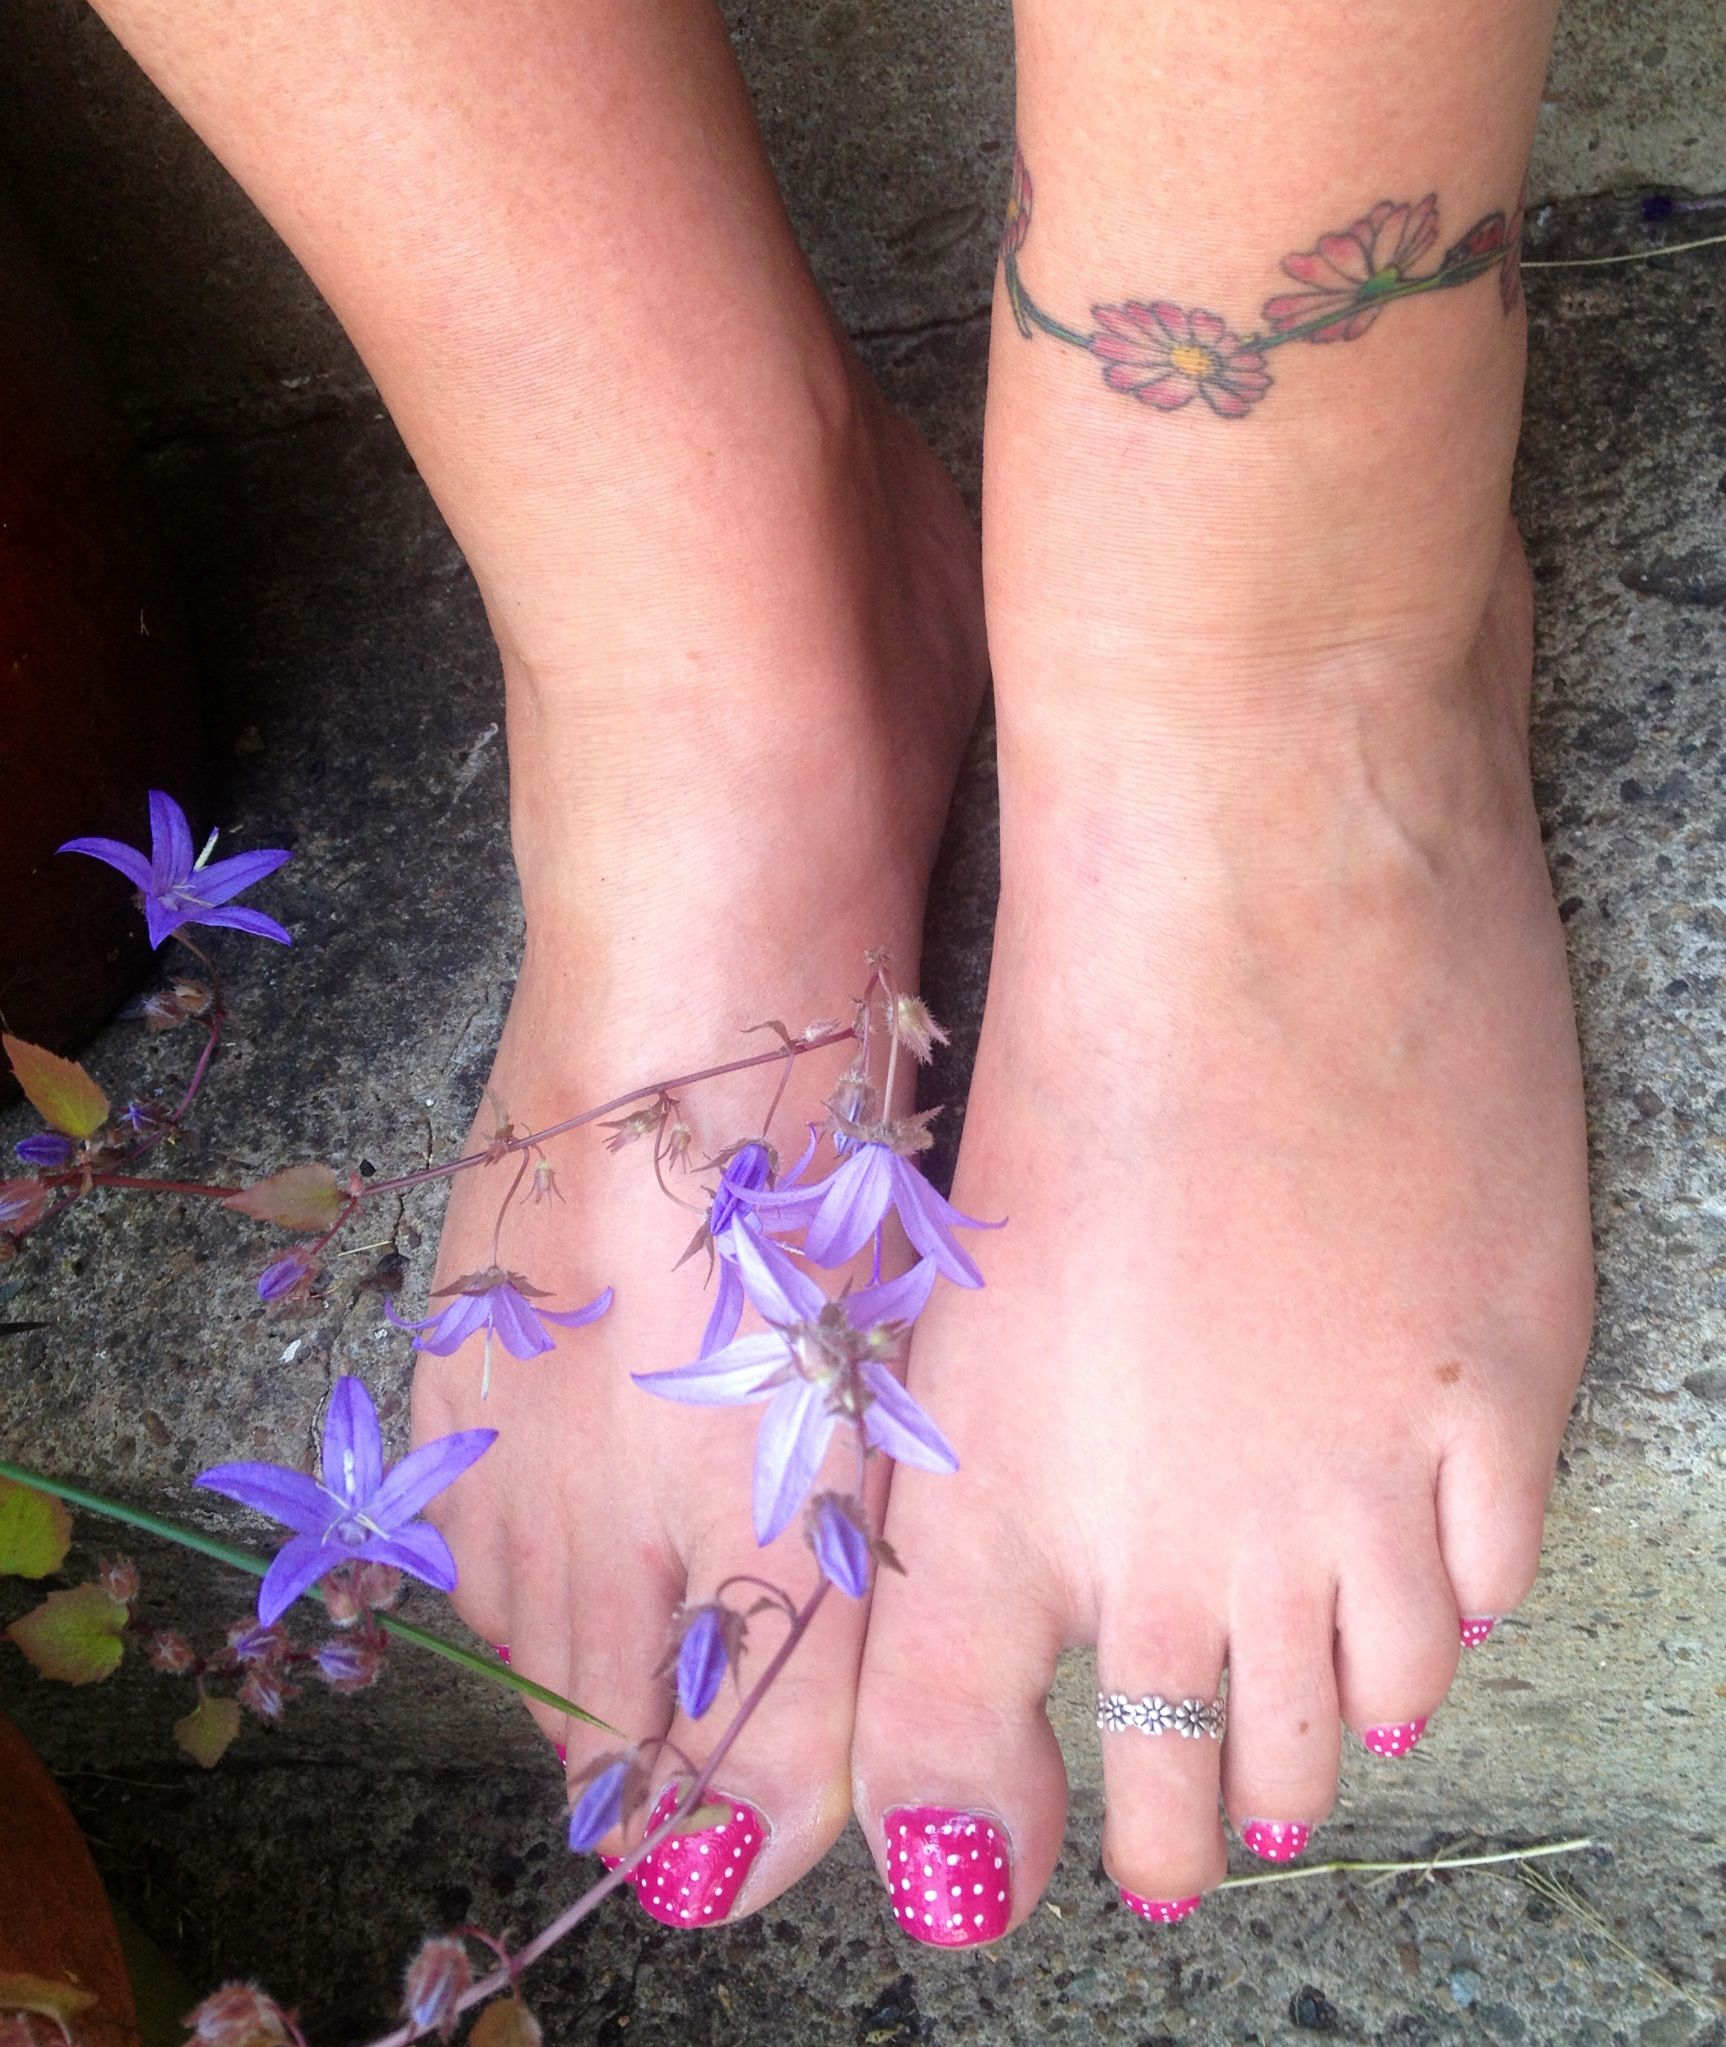 Campanula , daisies, strawberry toes and silver daisy toe ring - cute!